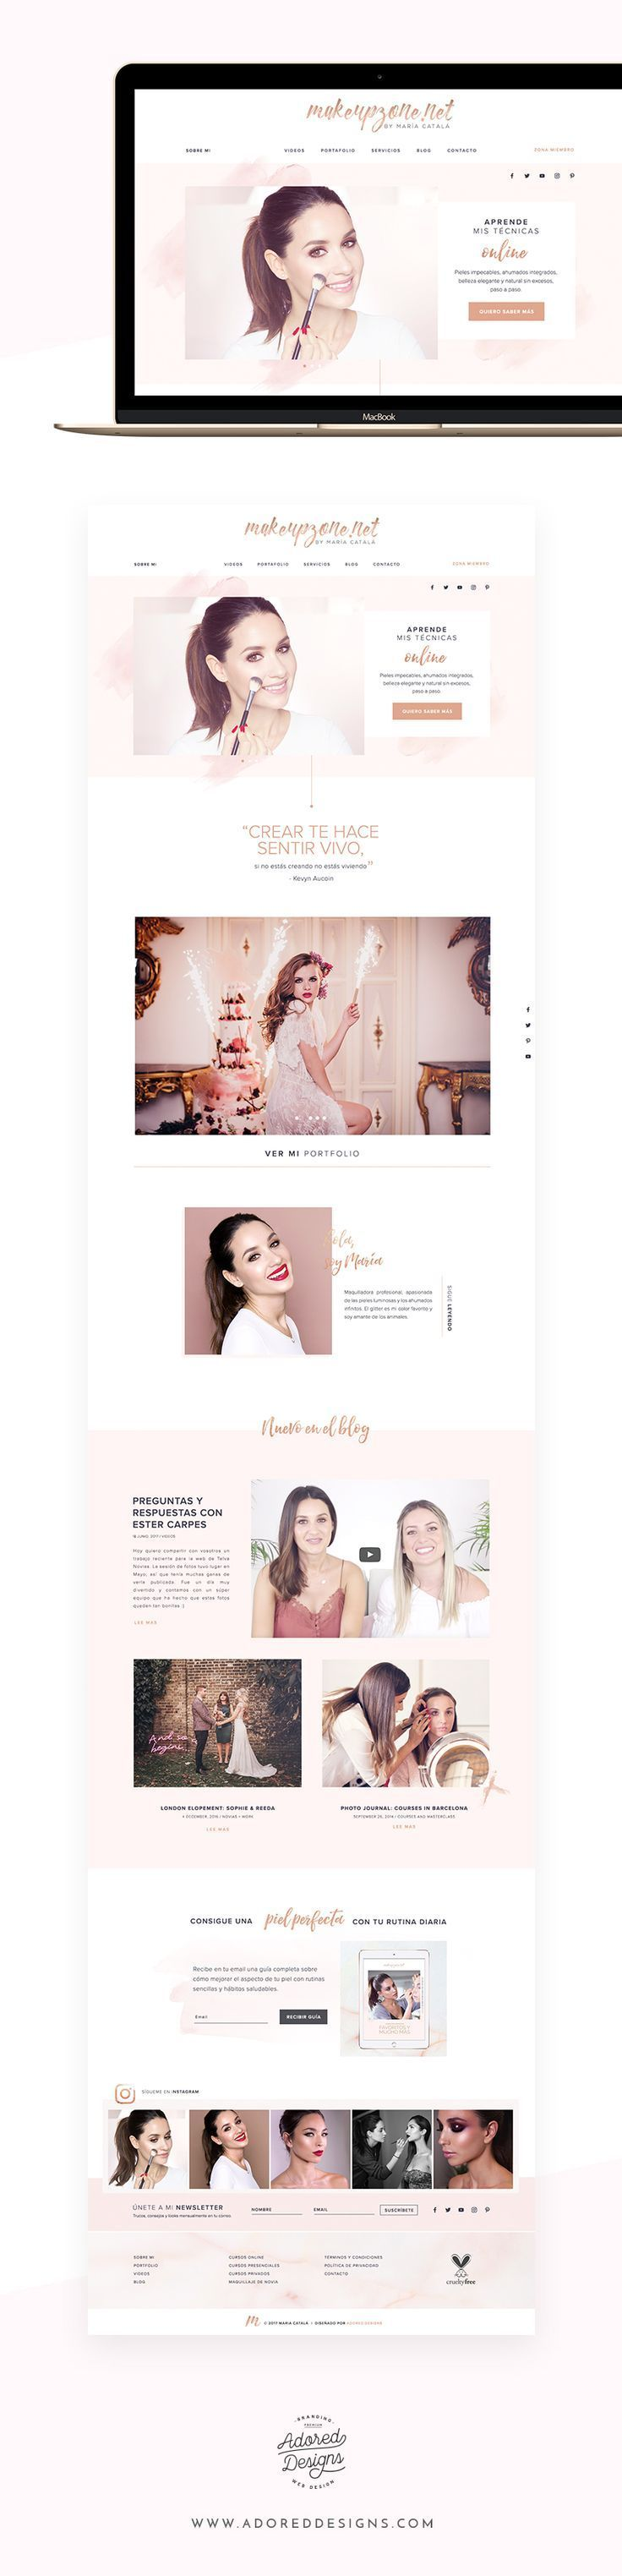 Web Design for a Makeup Artist Makeup